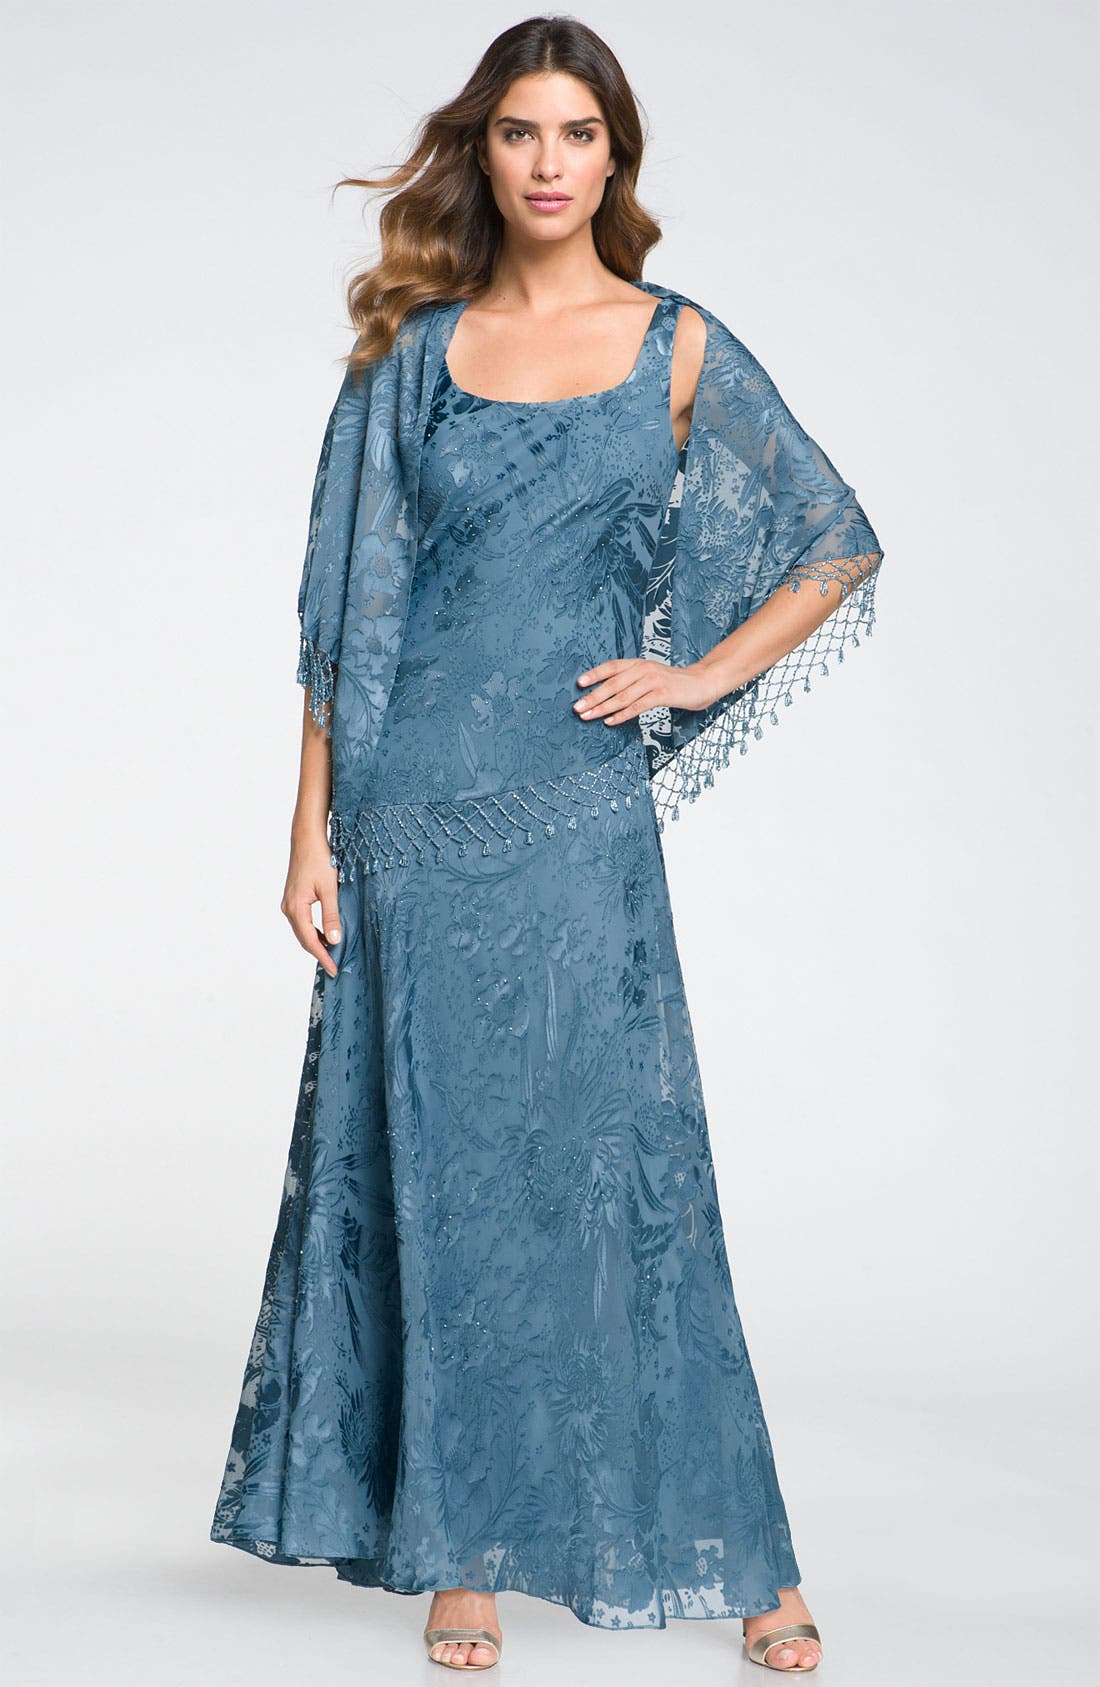 Alternate Image 1 Selected - Alex Evenings Sequin Lace Overlay Dress & Shawl (Petite)